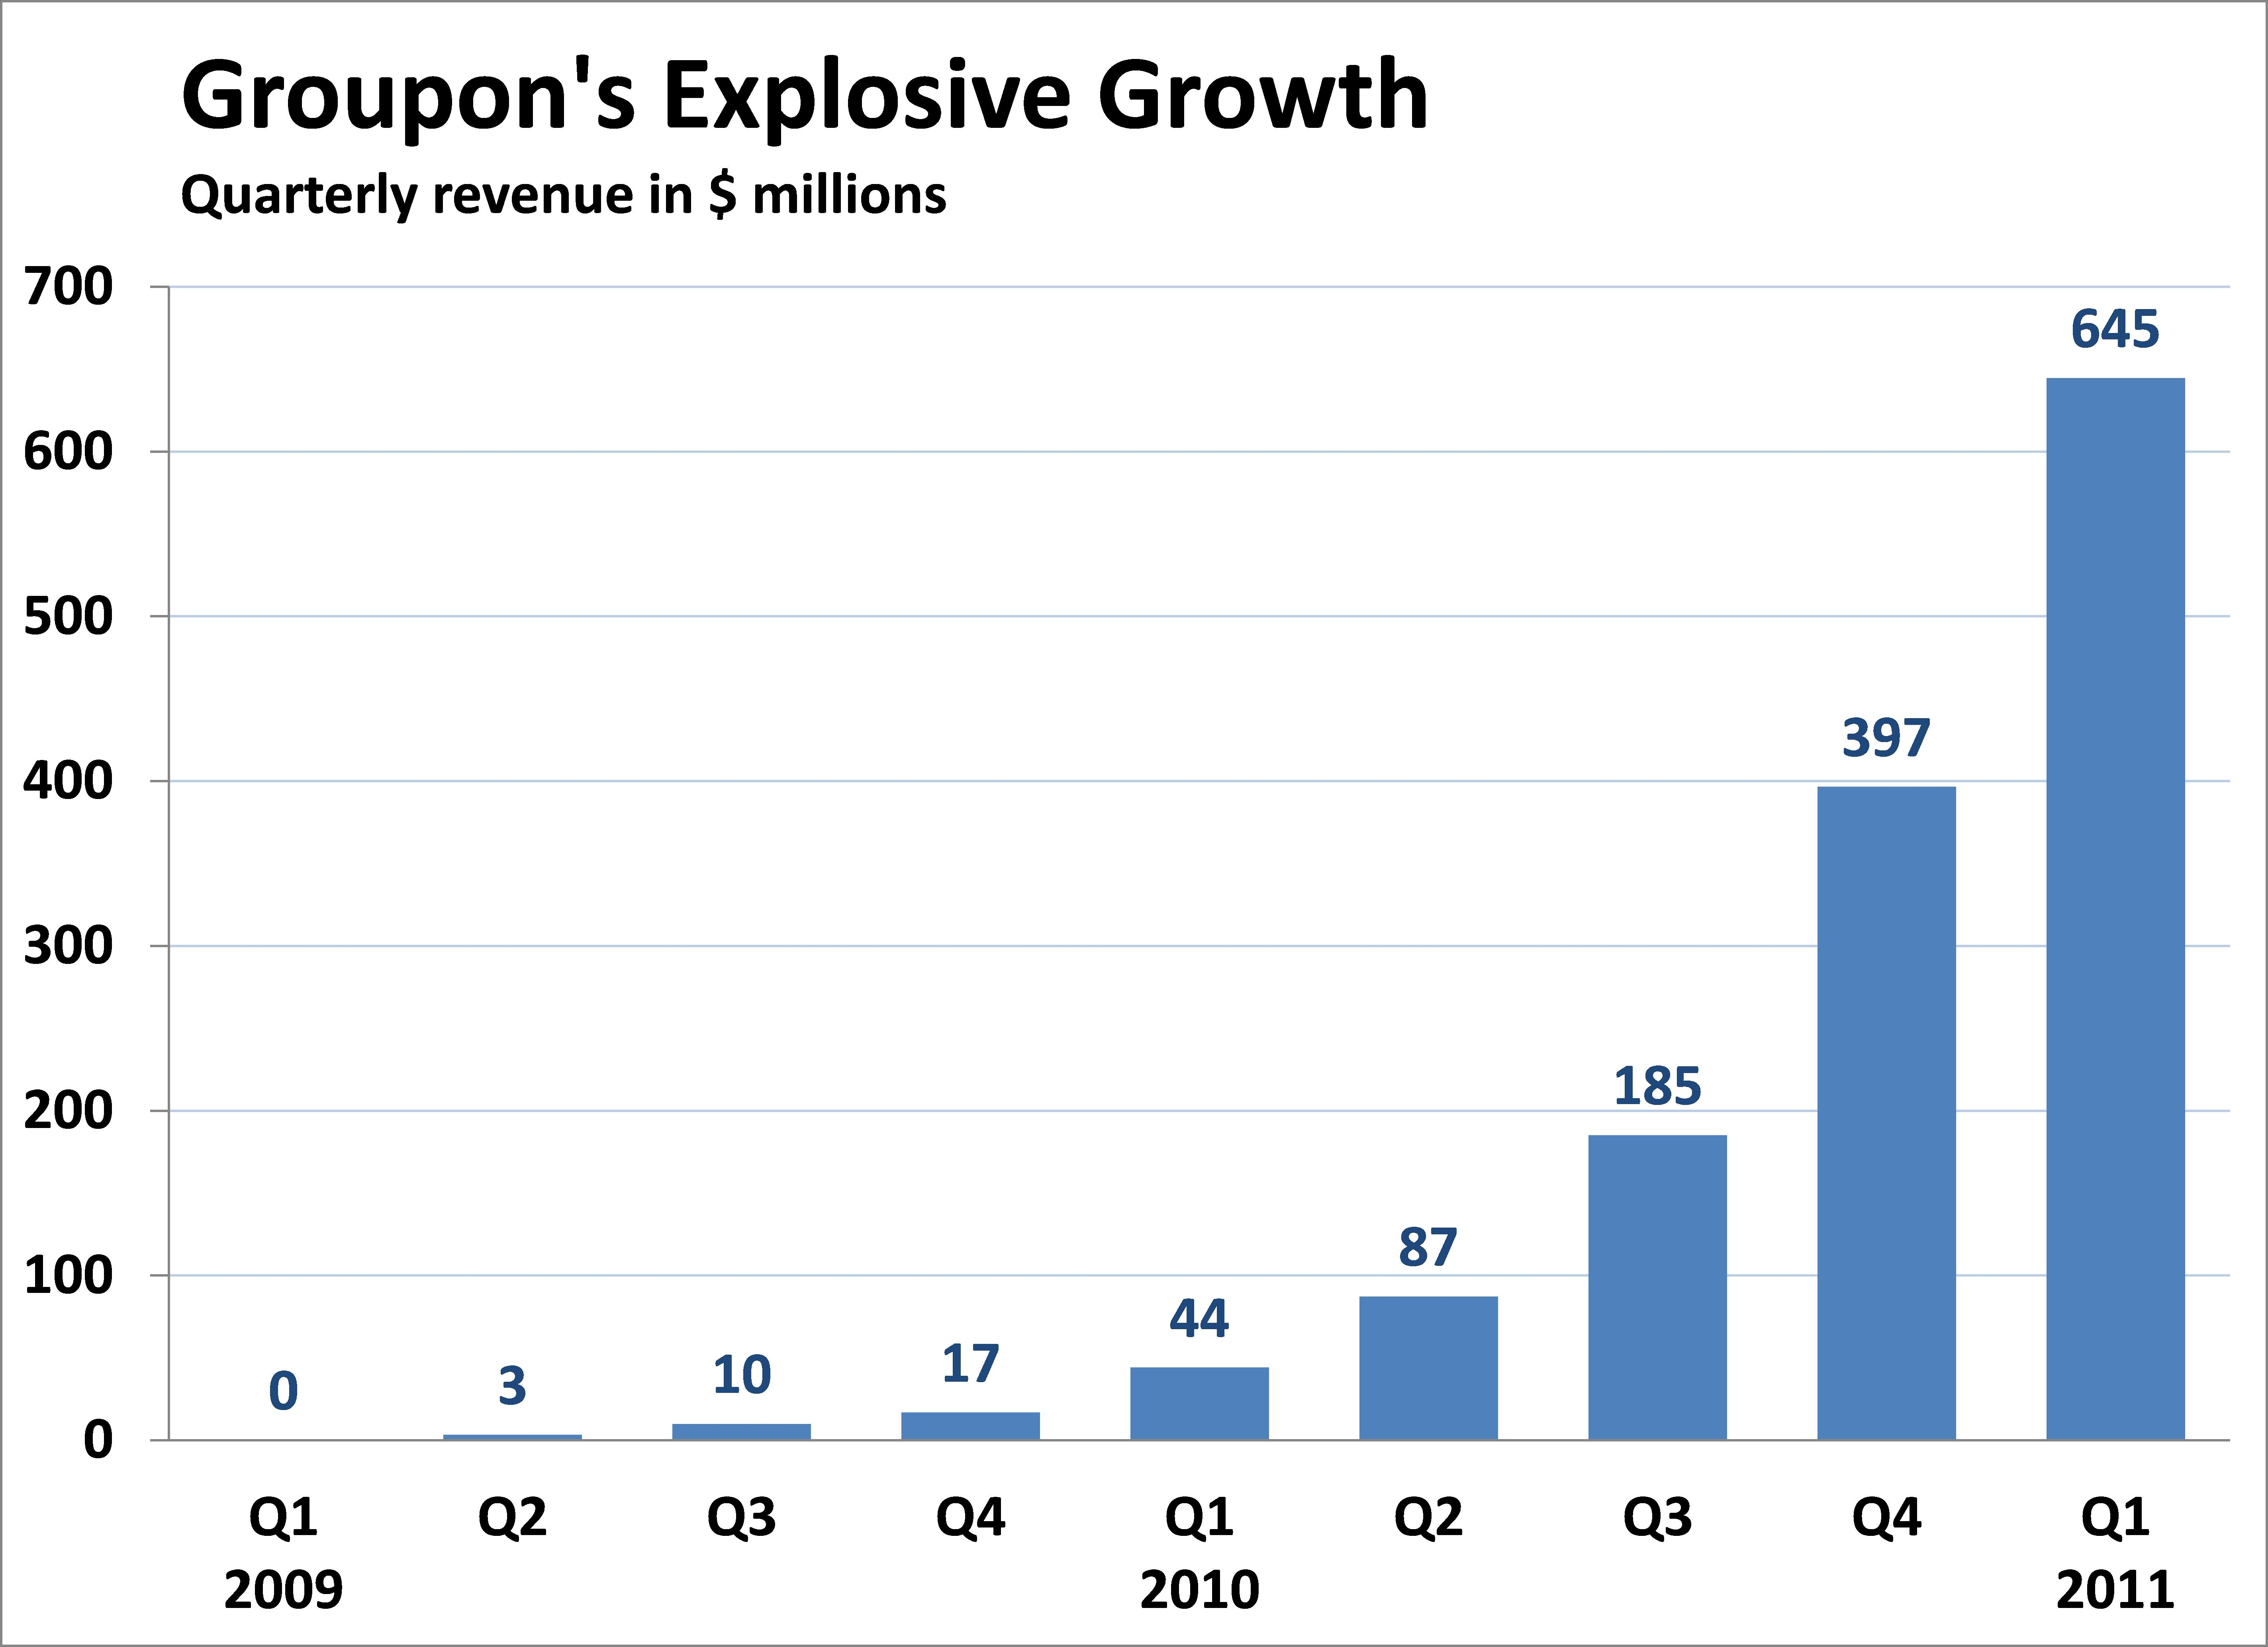 Groupon's Explosive Growth